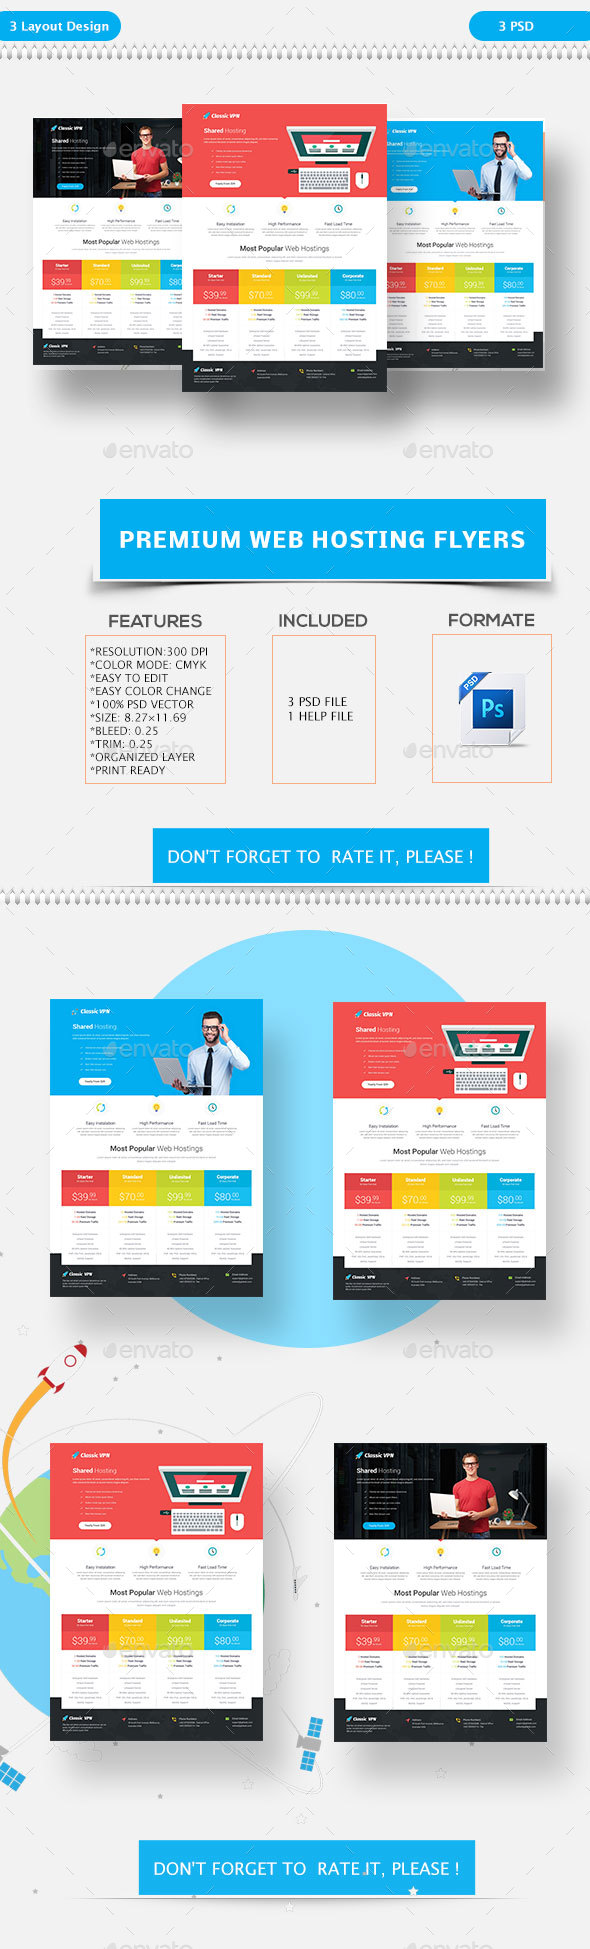 Premium Web Hosting Flyers